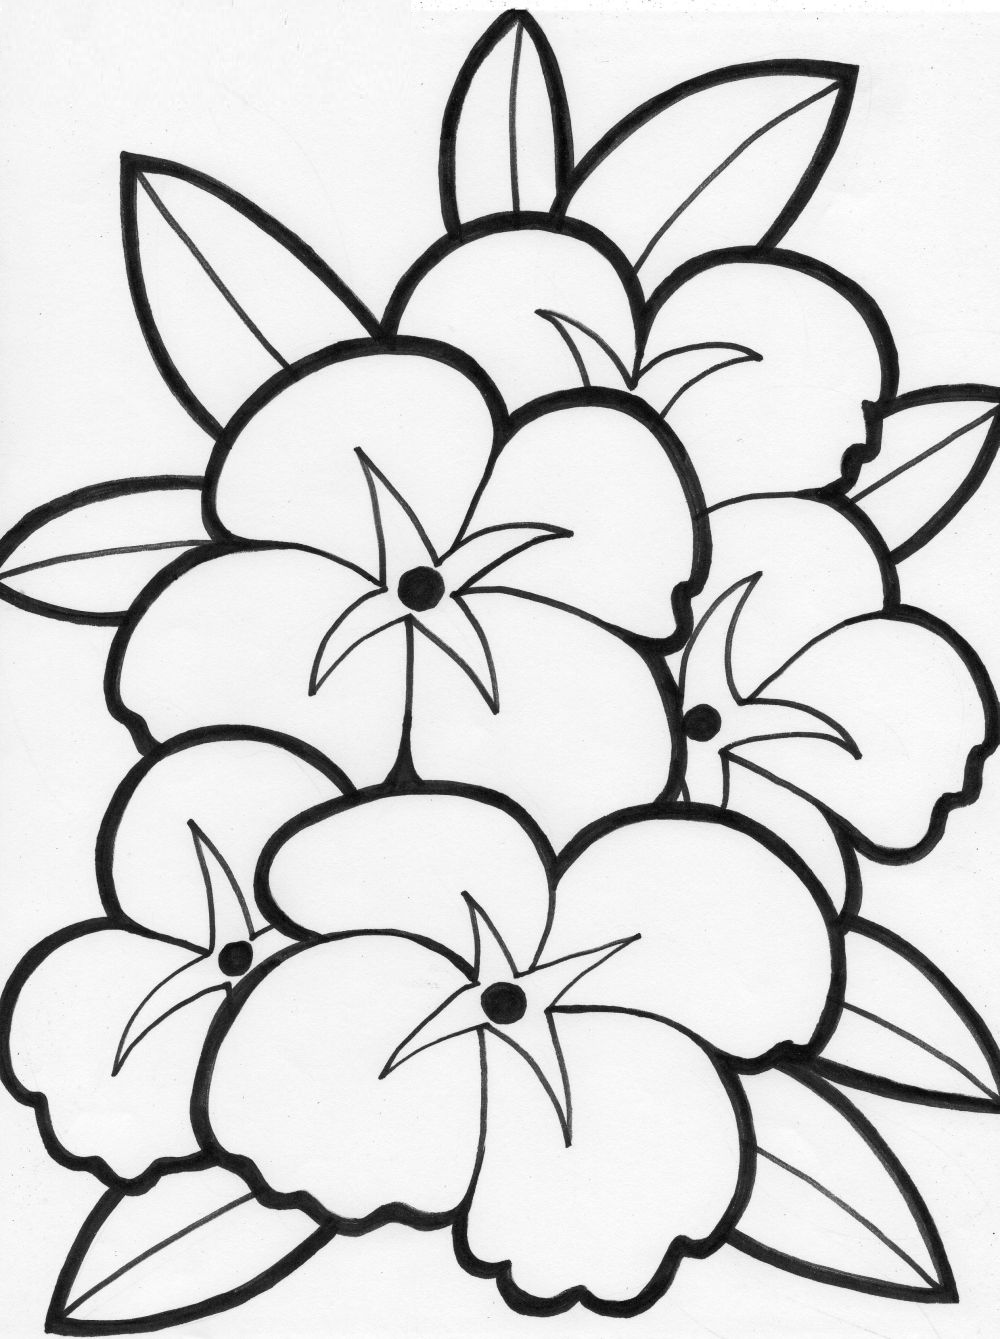 flower page printable coloring sheets flowers coloring pages free printable download coloring pages hub - Images Of Coloring Pictures